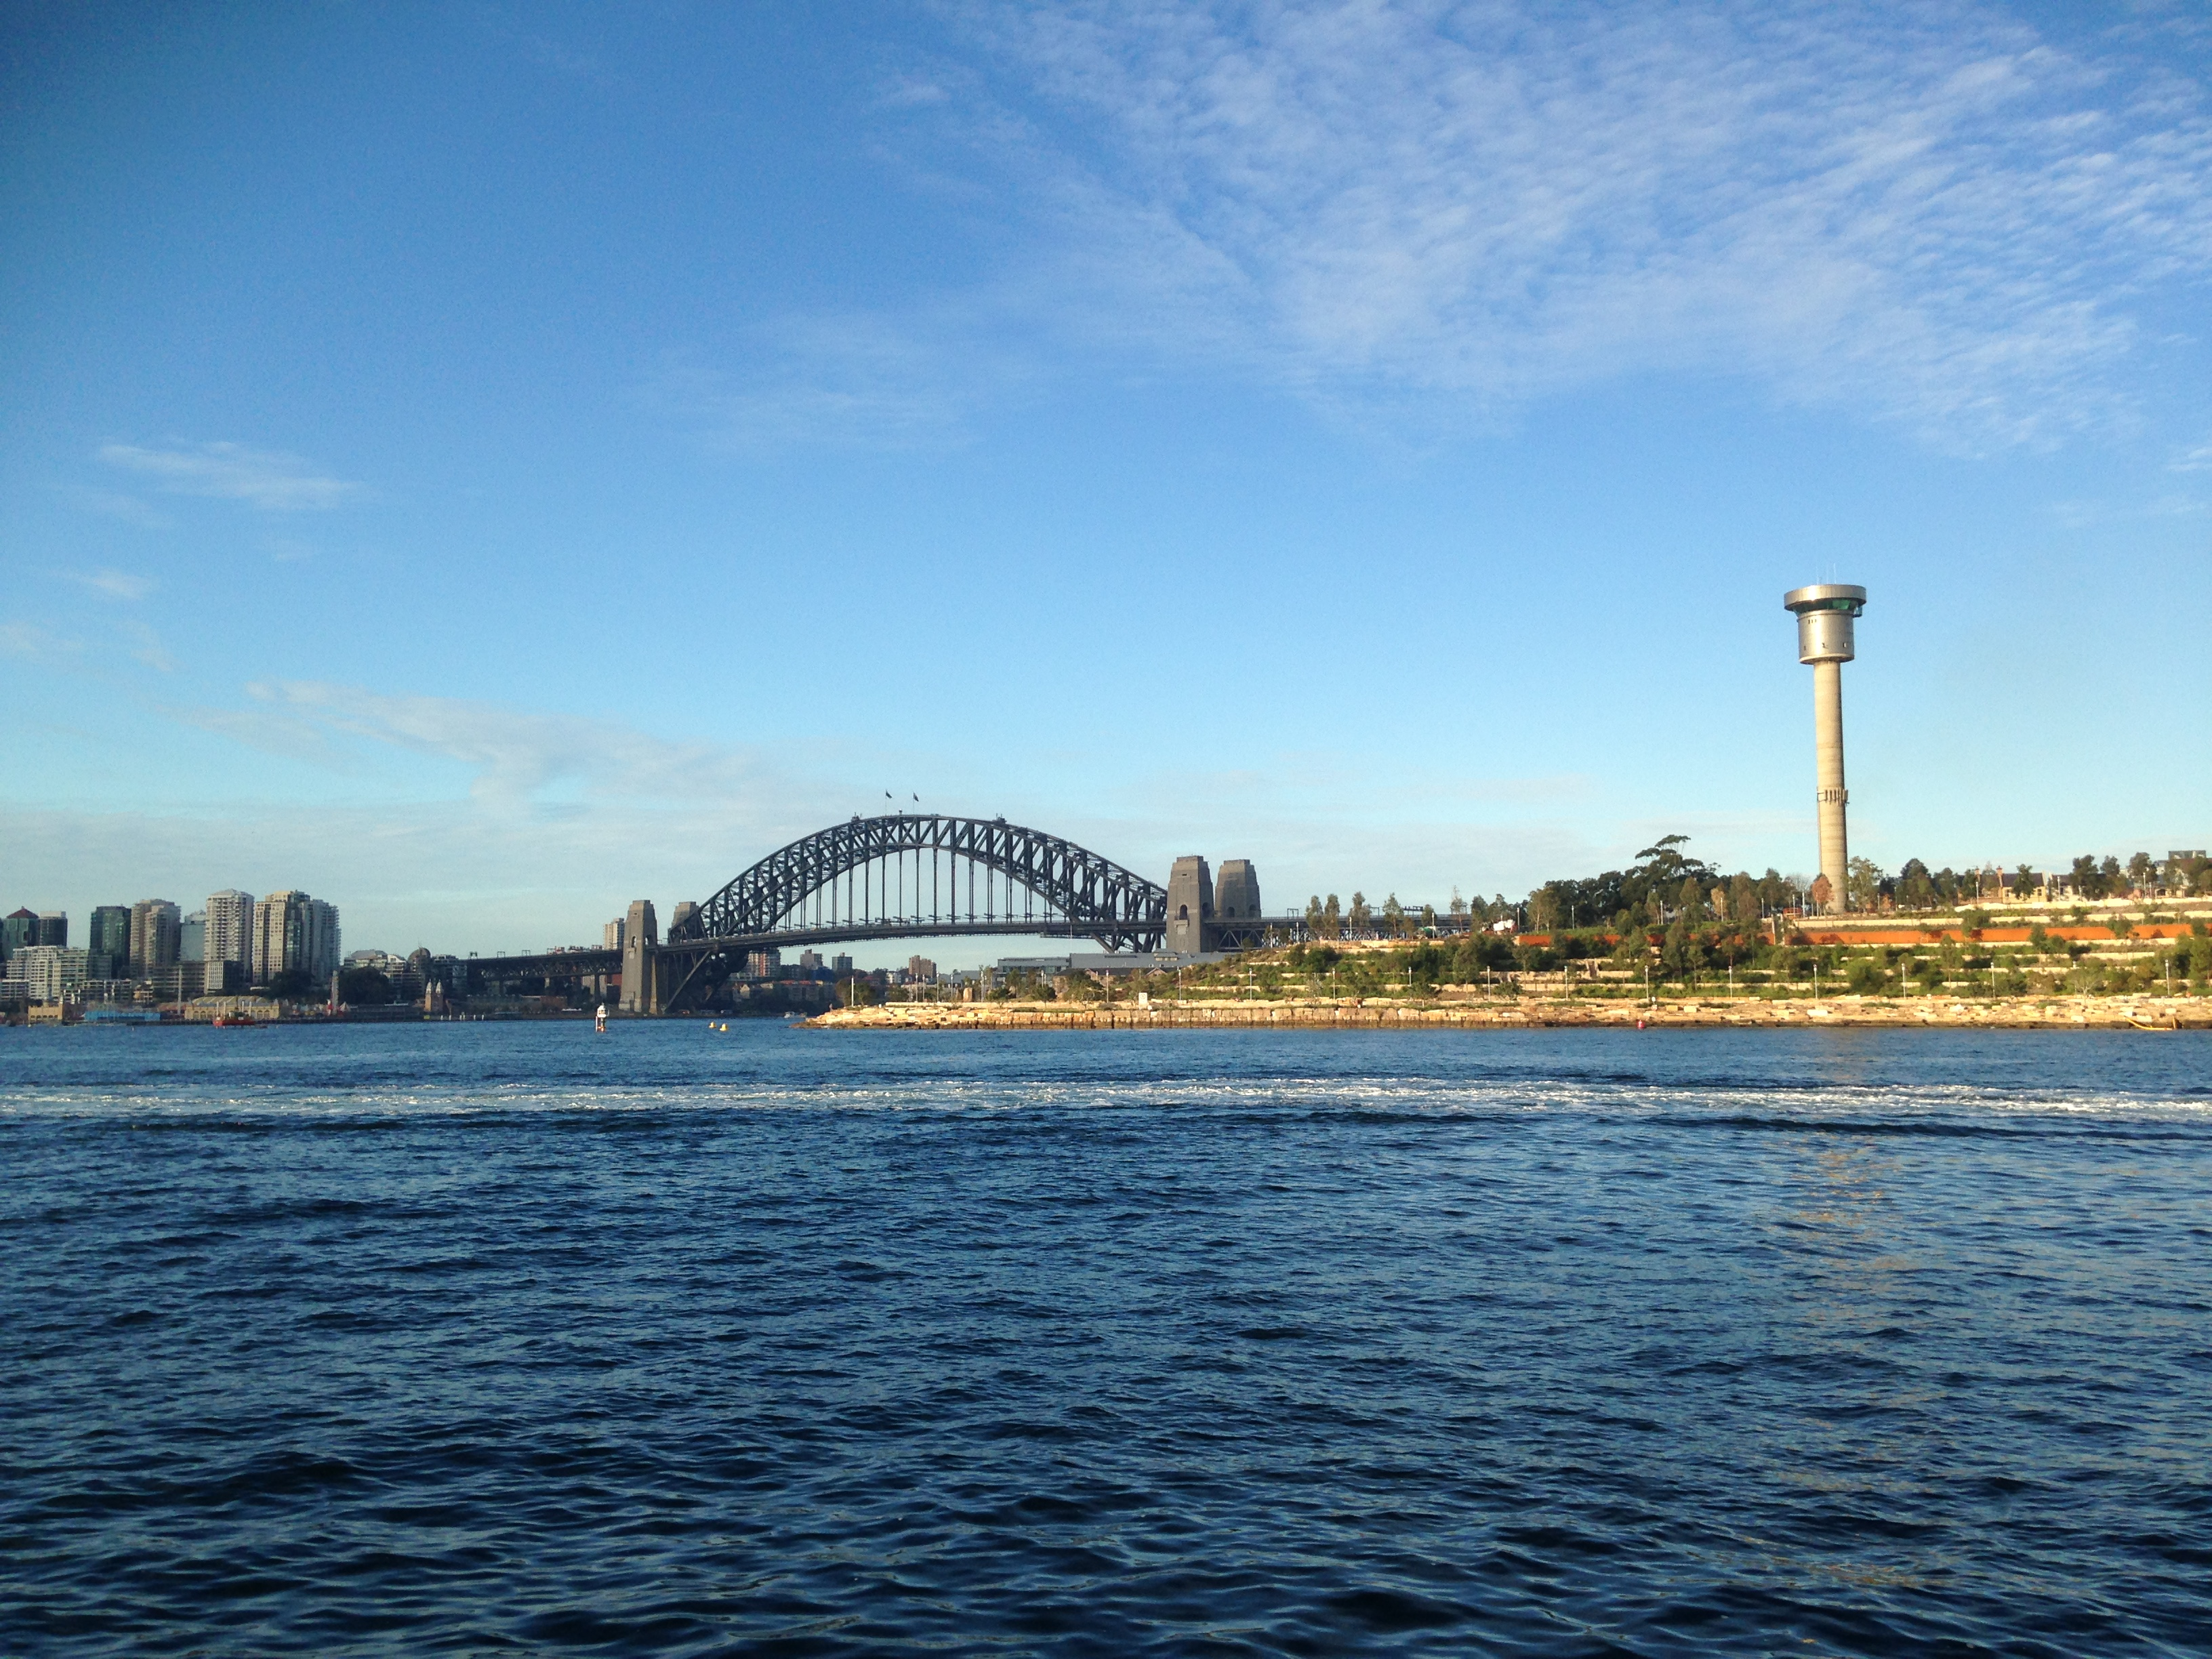 Harbour bridge, taken on our way to the conference opening at the State Library of NSW